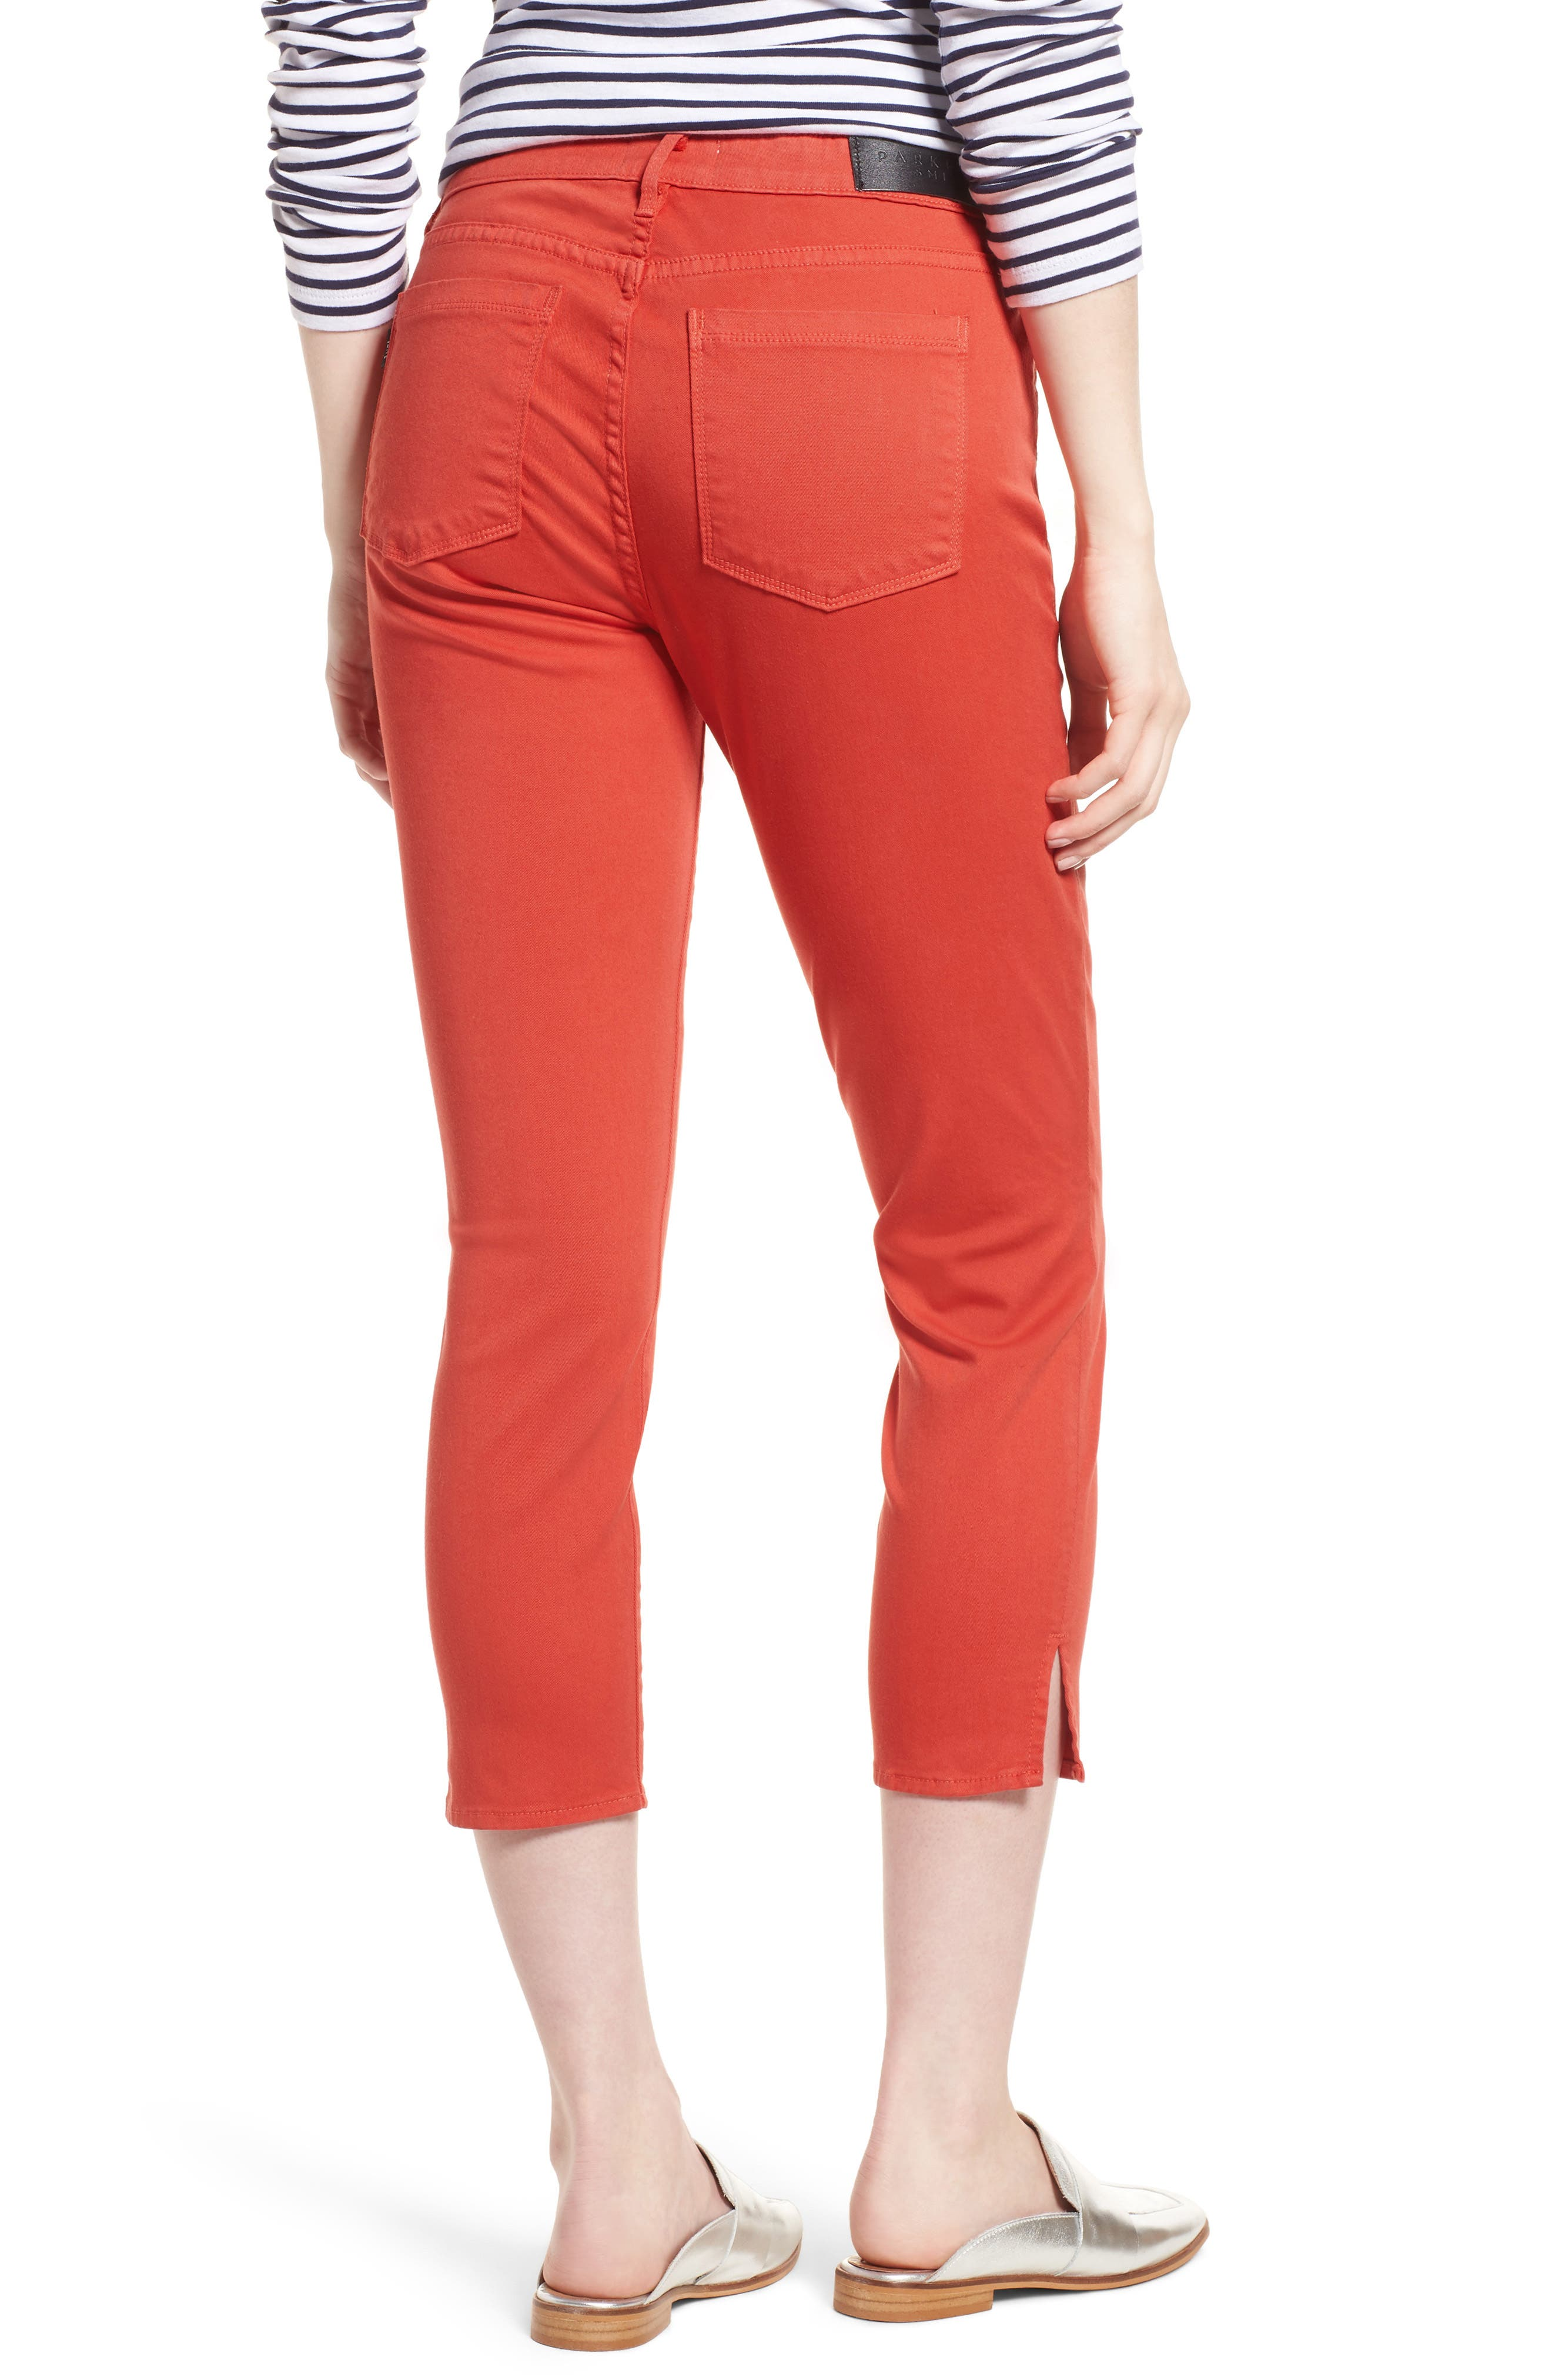 Pedal Pusher Crop Jeans,                             Alternate thumbnail 2, color,